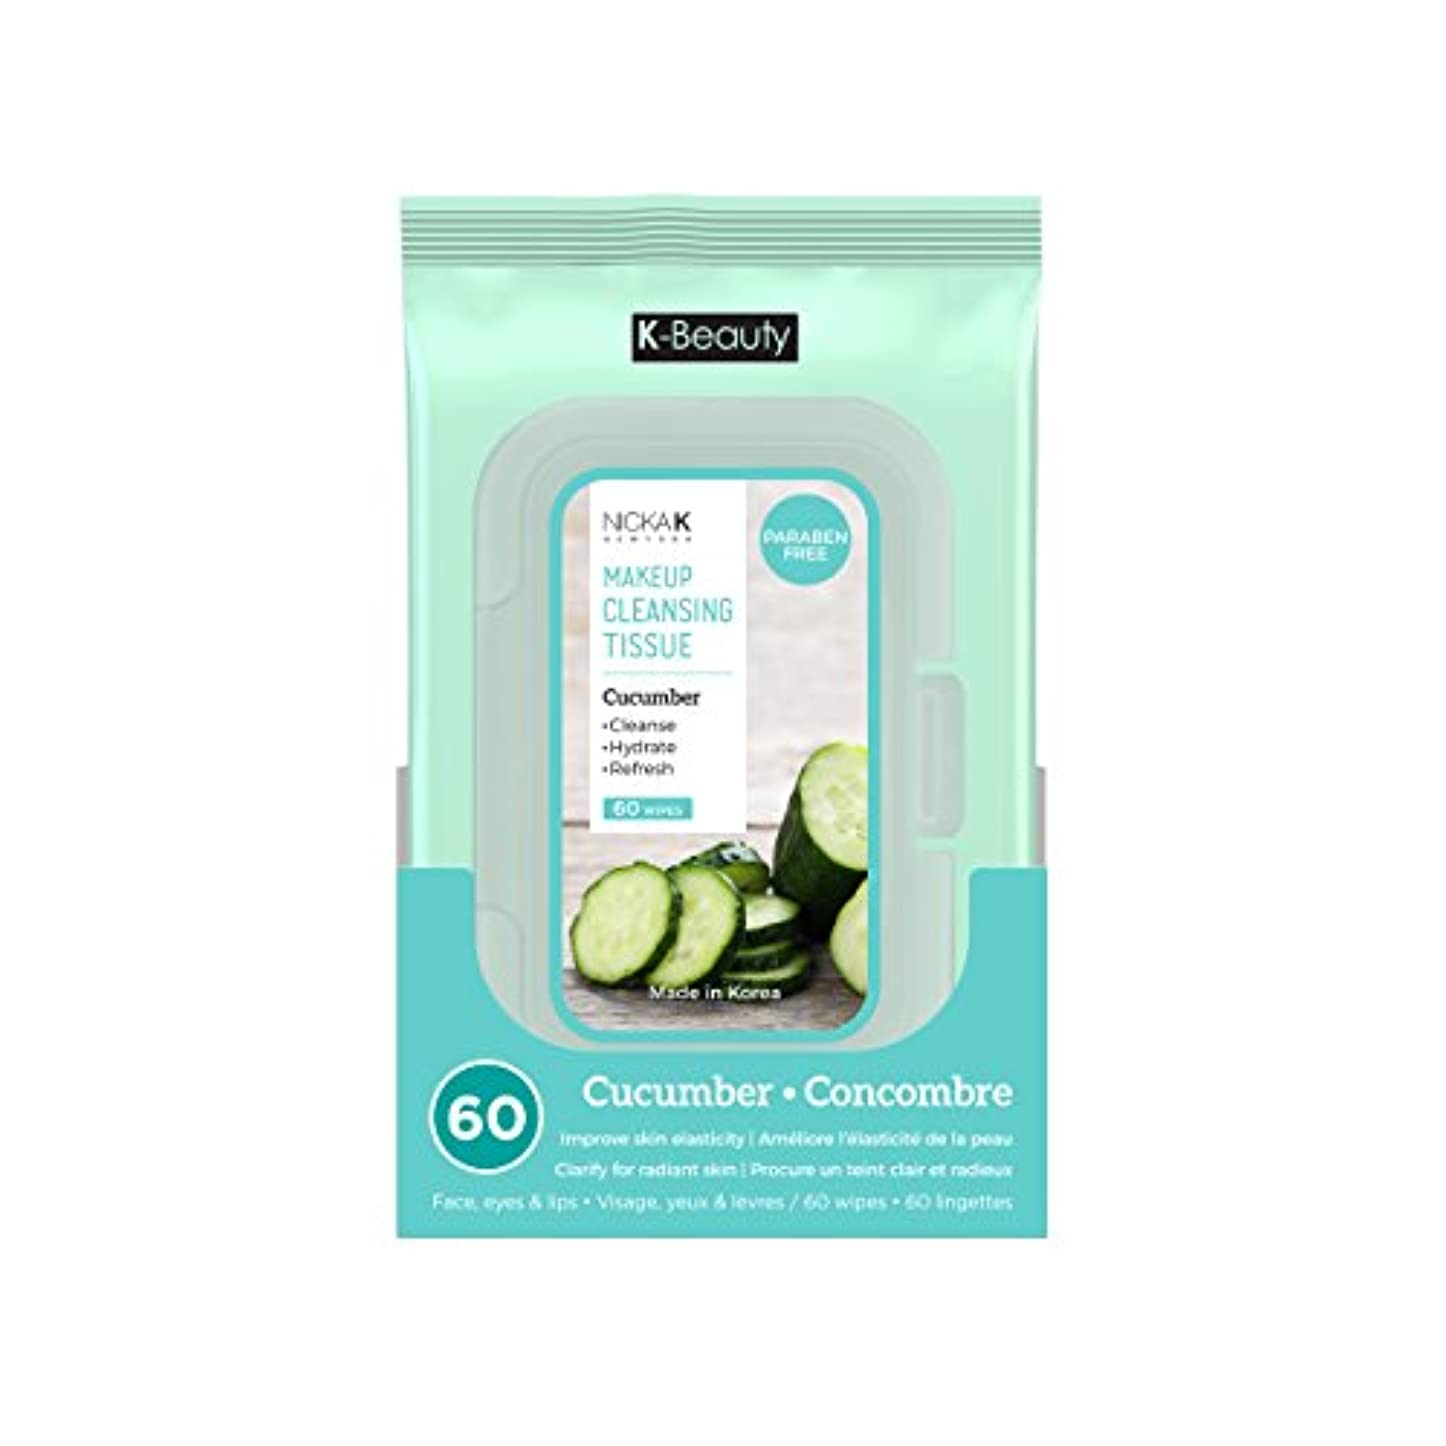 NICKA K Make Up Cleansing Tissue - Cucumber (並行輸入品)